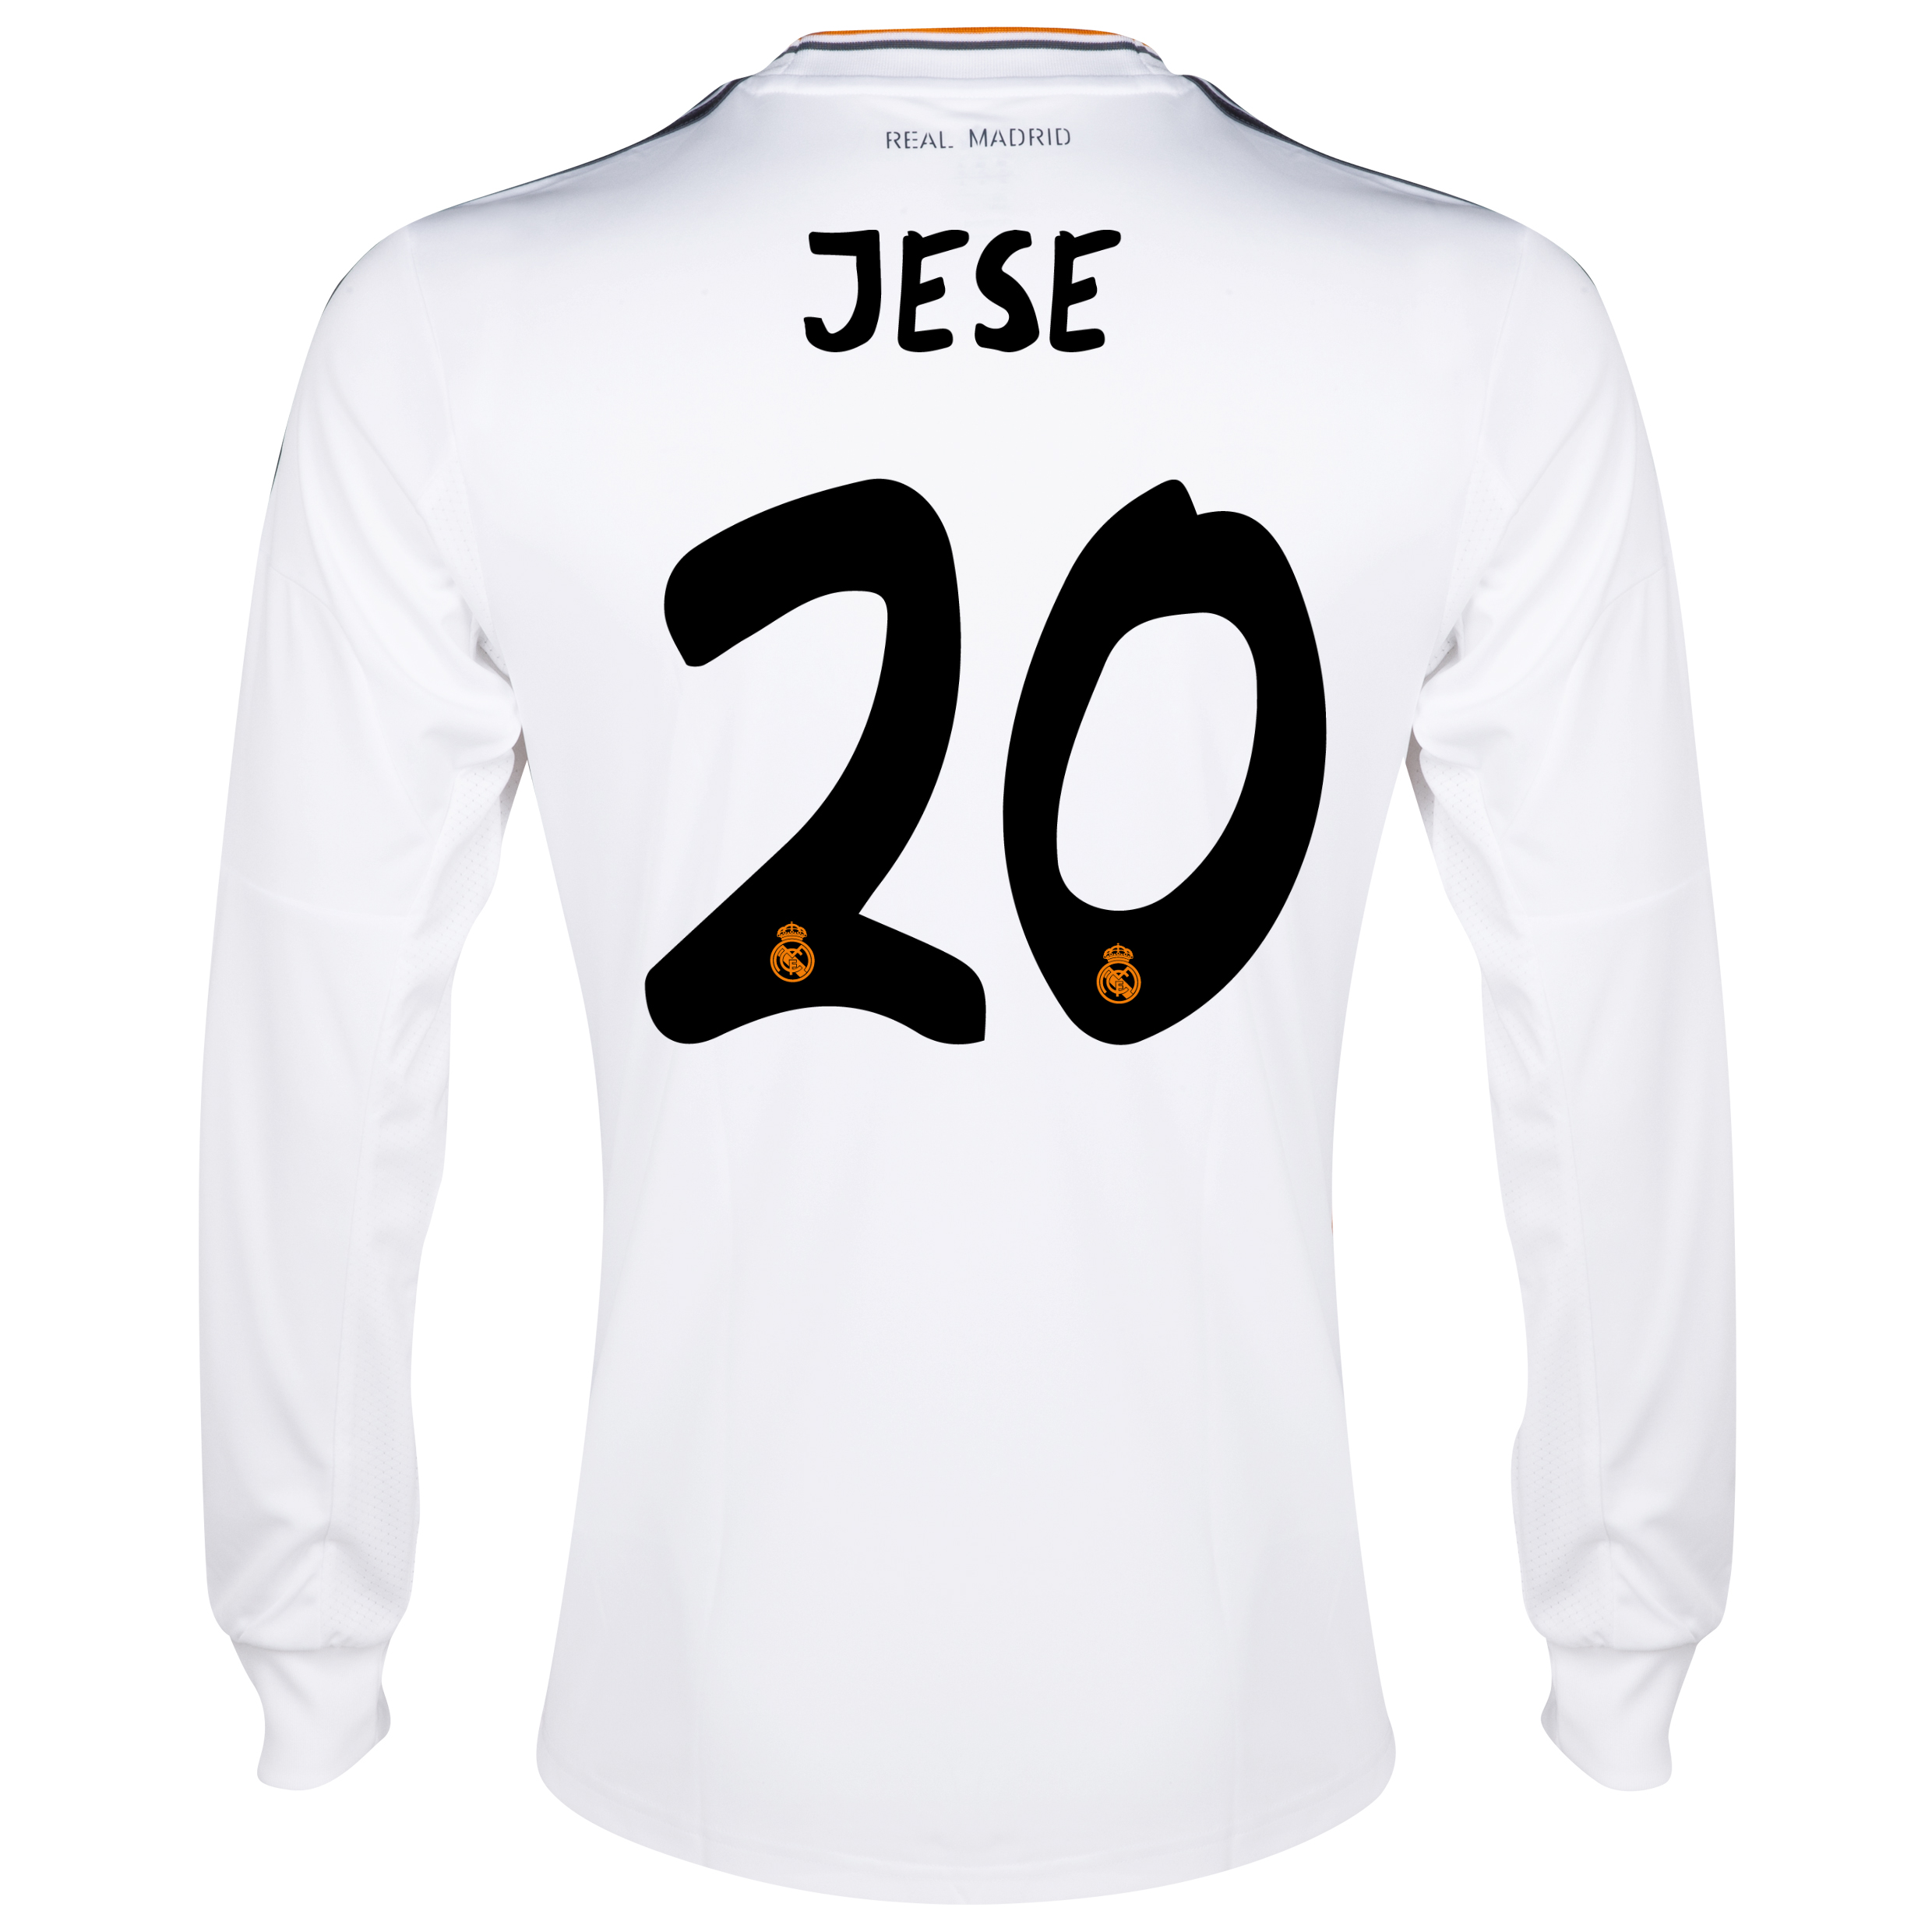 Real Madrid Home Shirt 2013/14 - Long Sleeve with Jese 20 printing